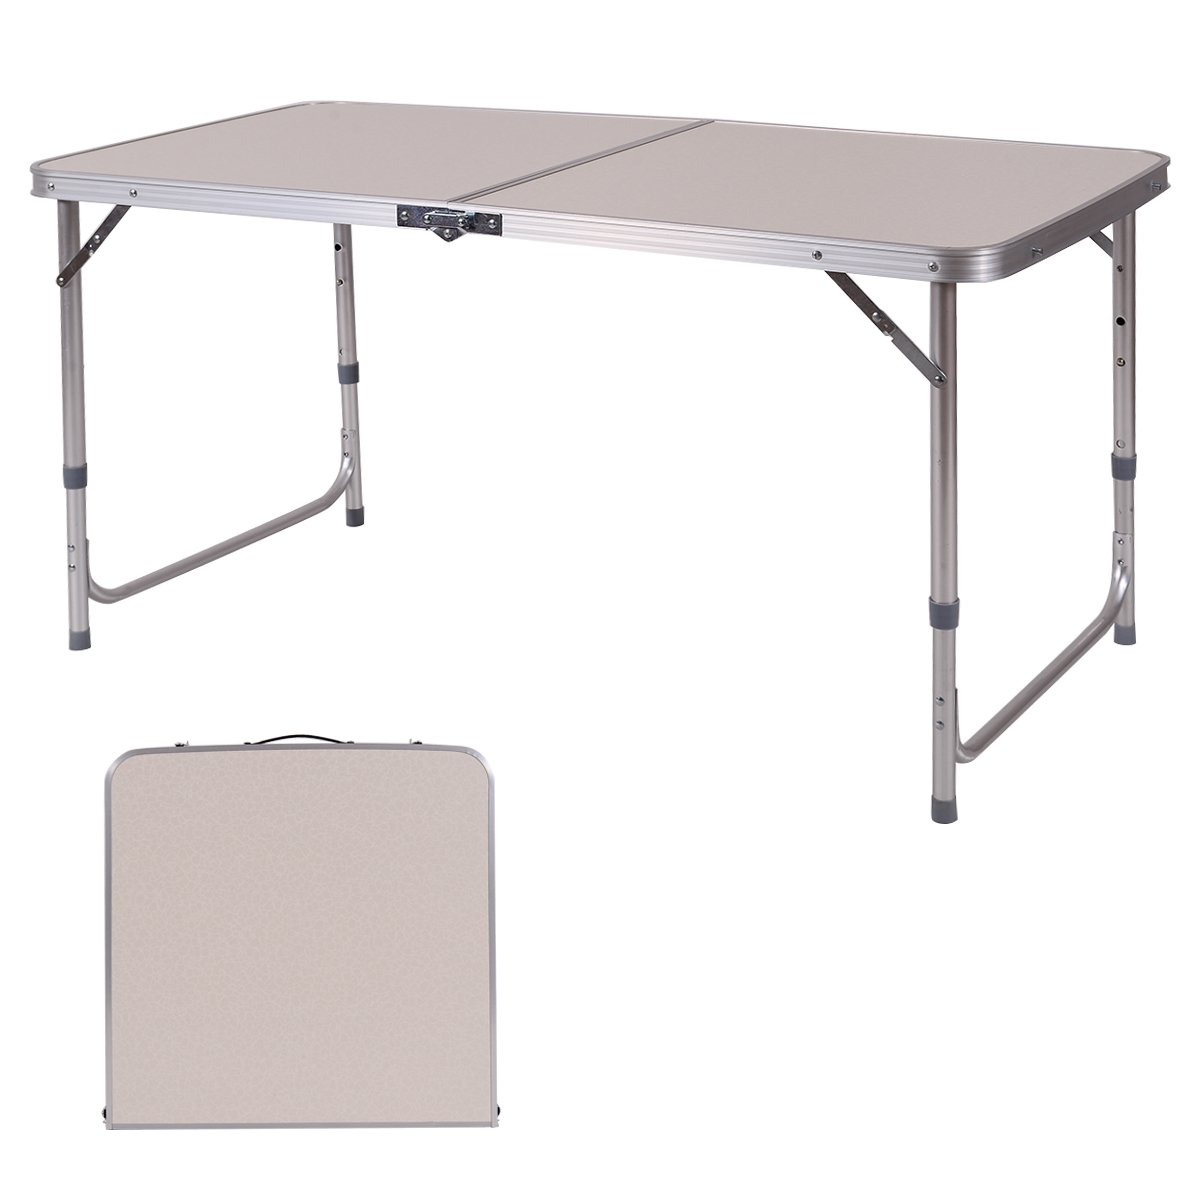 Costway Camping Table Folding Aluminum Portable Picnic Party Dining Table 120x60x70cm Adjustable Height Outdoor Garden BBQ Desk